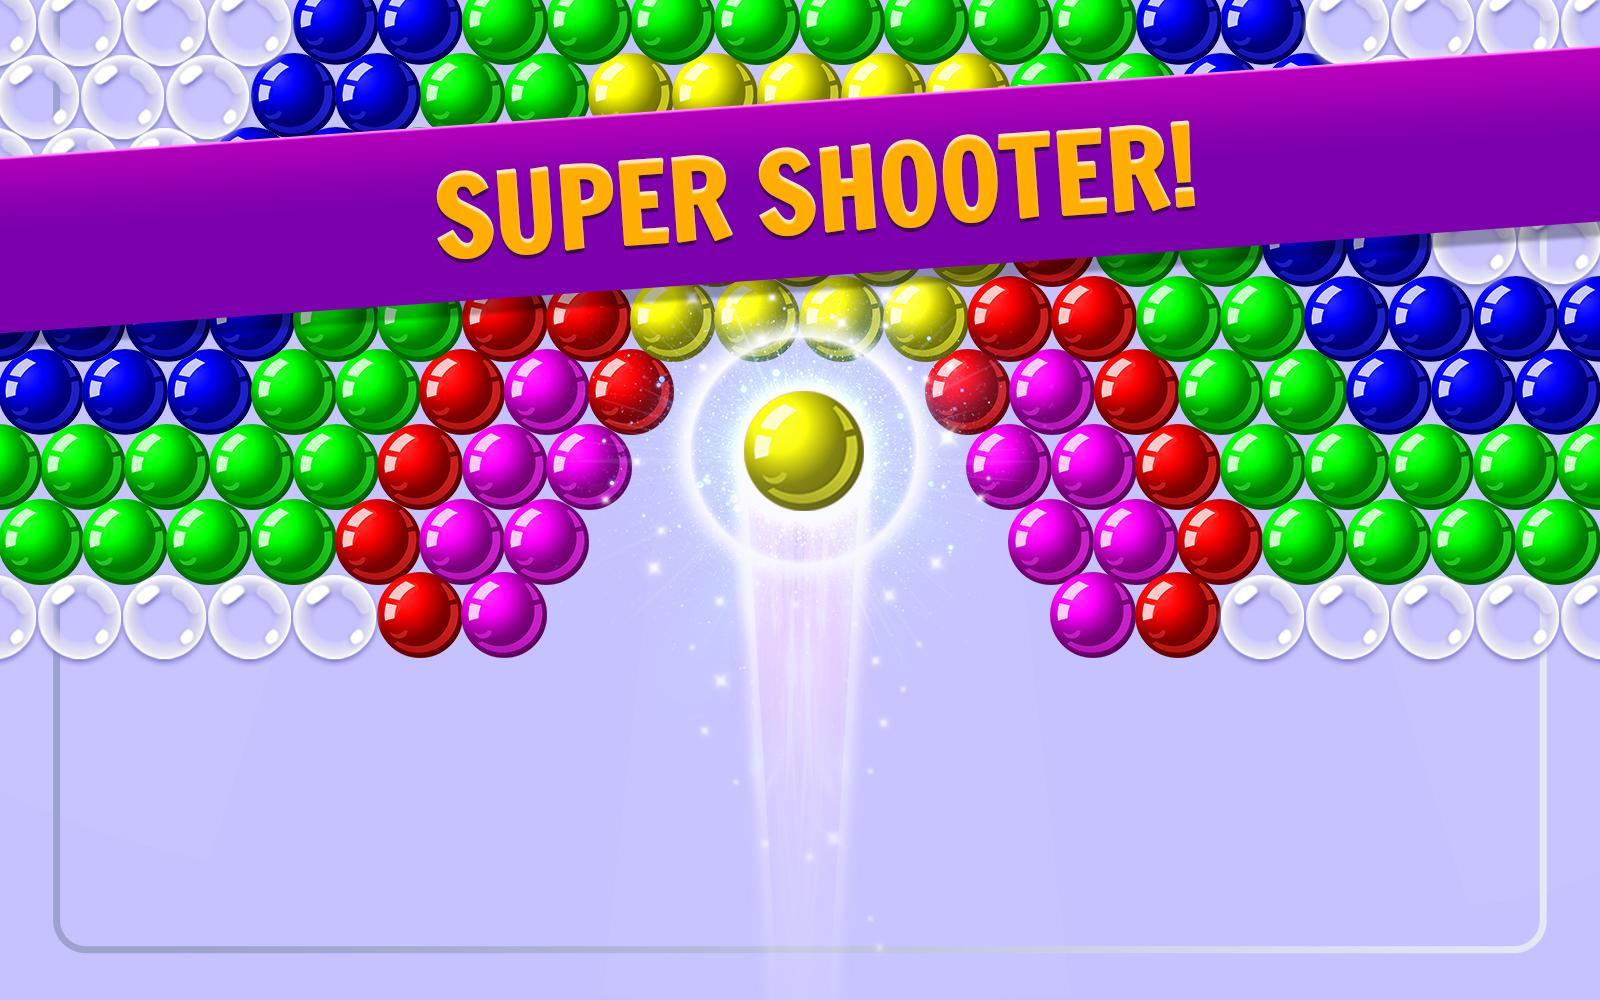 Www Bubbel Shooter